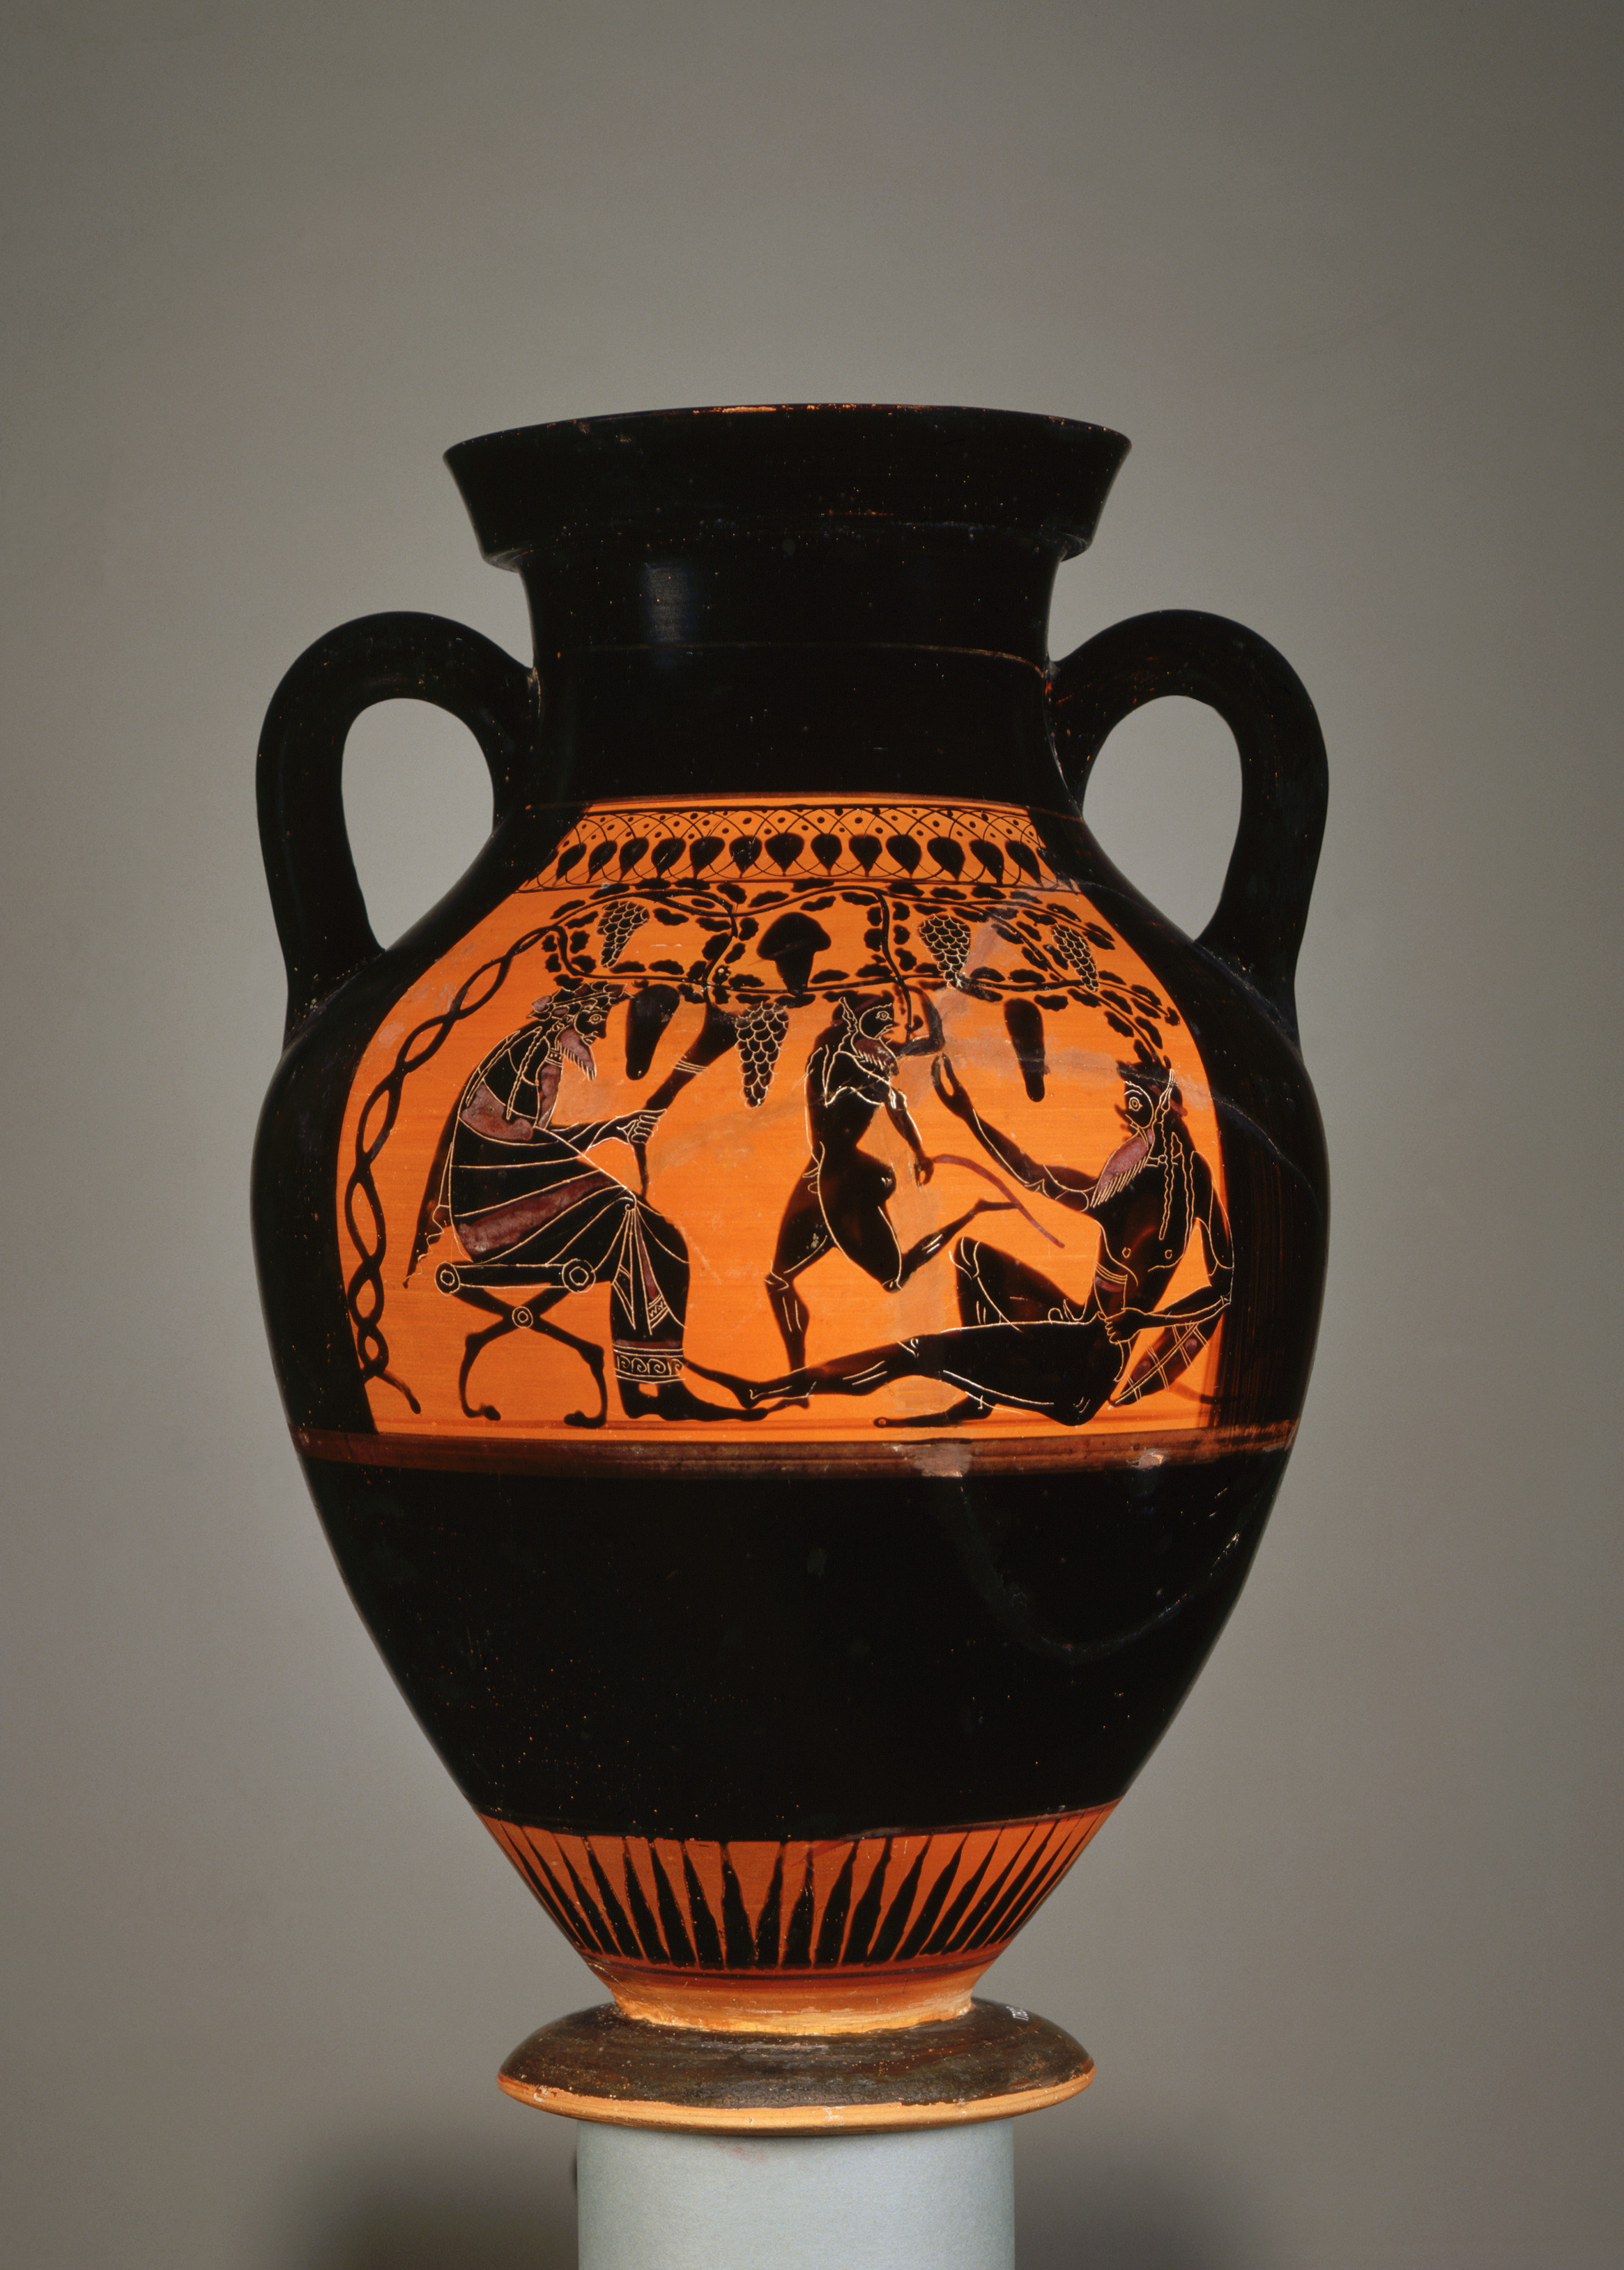 2 fresh ancient greek vases home idea sparta ancient greece history reviewsmspy